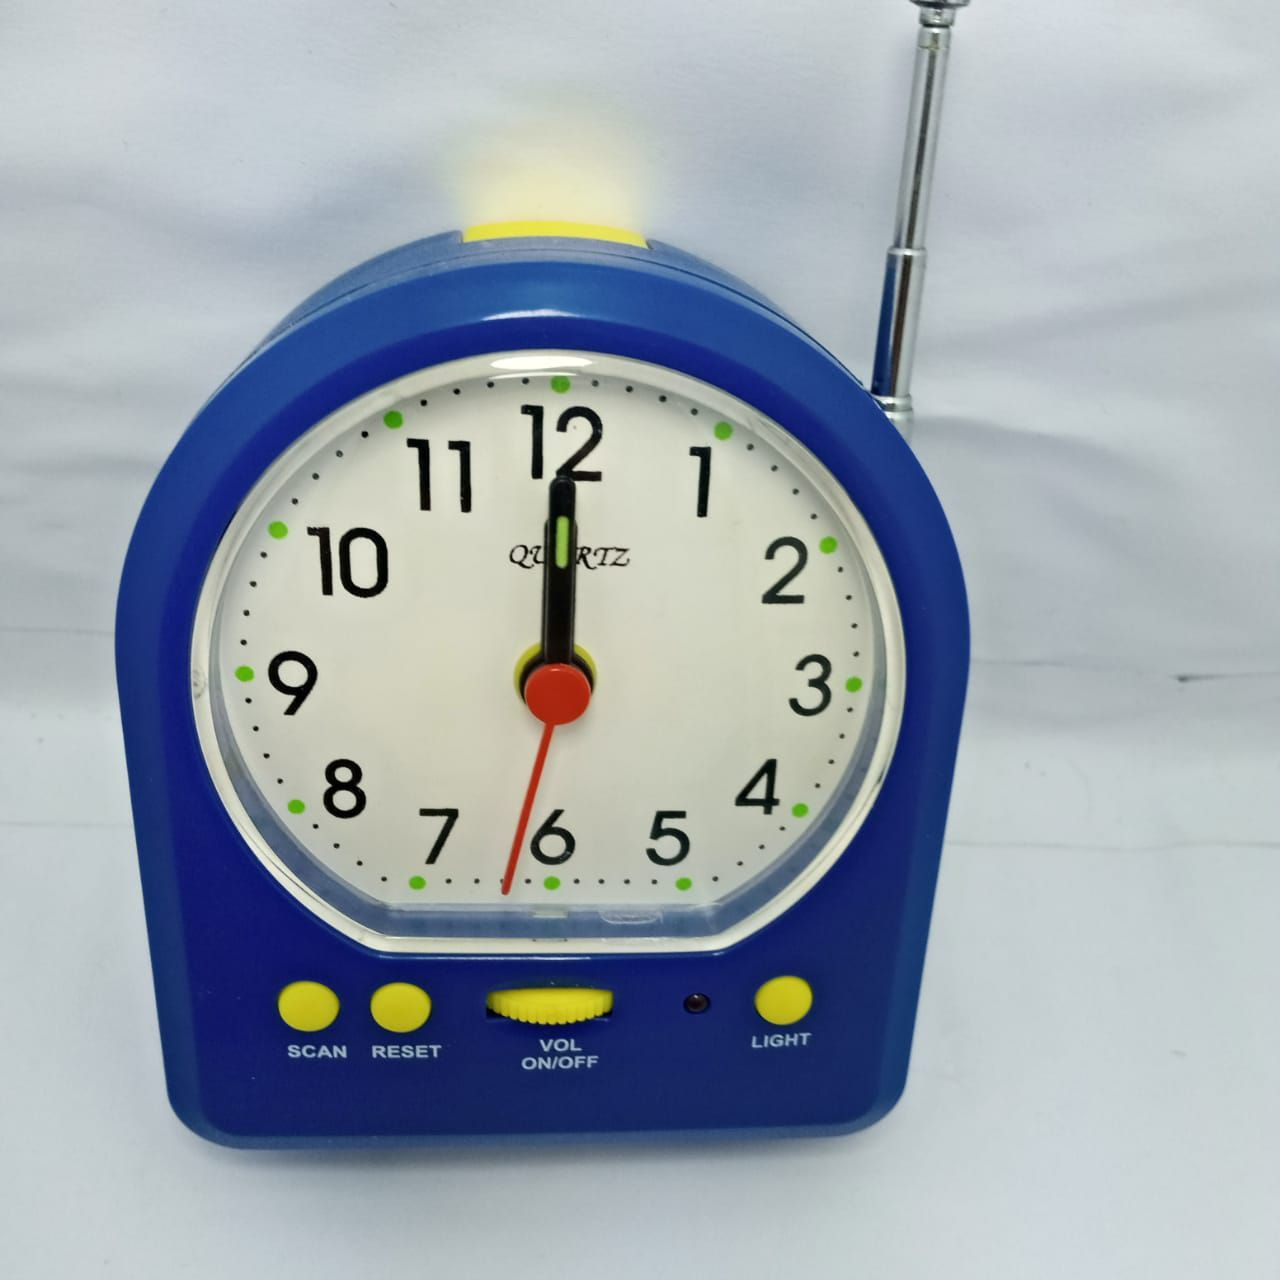 Table Clock - Alarm Clock With FM Radio For Home and Office